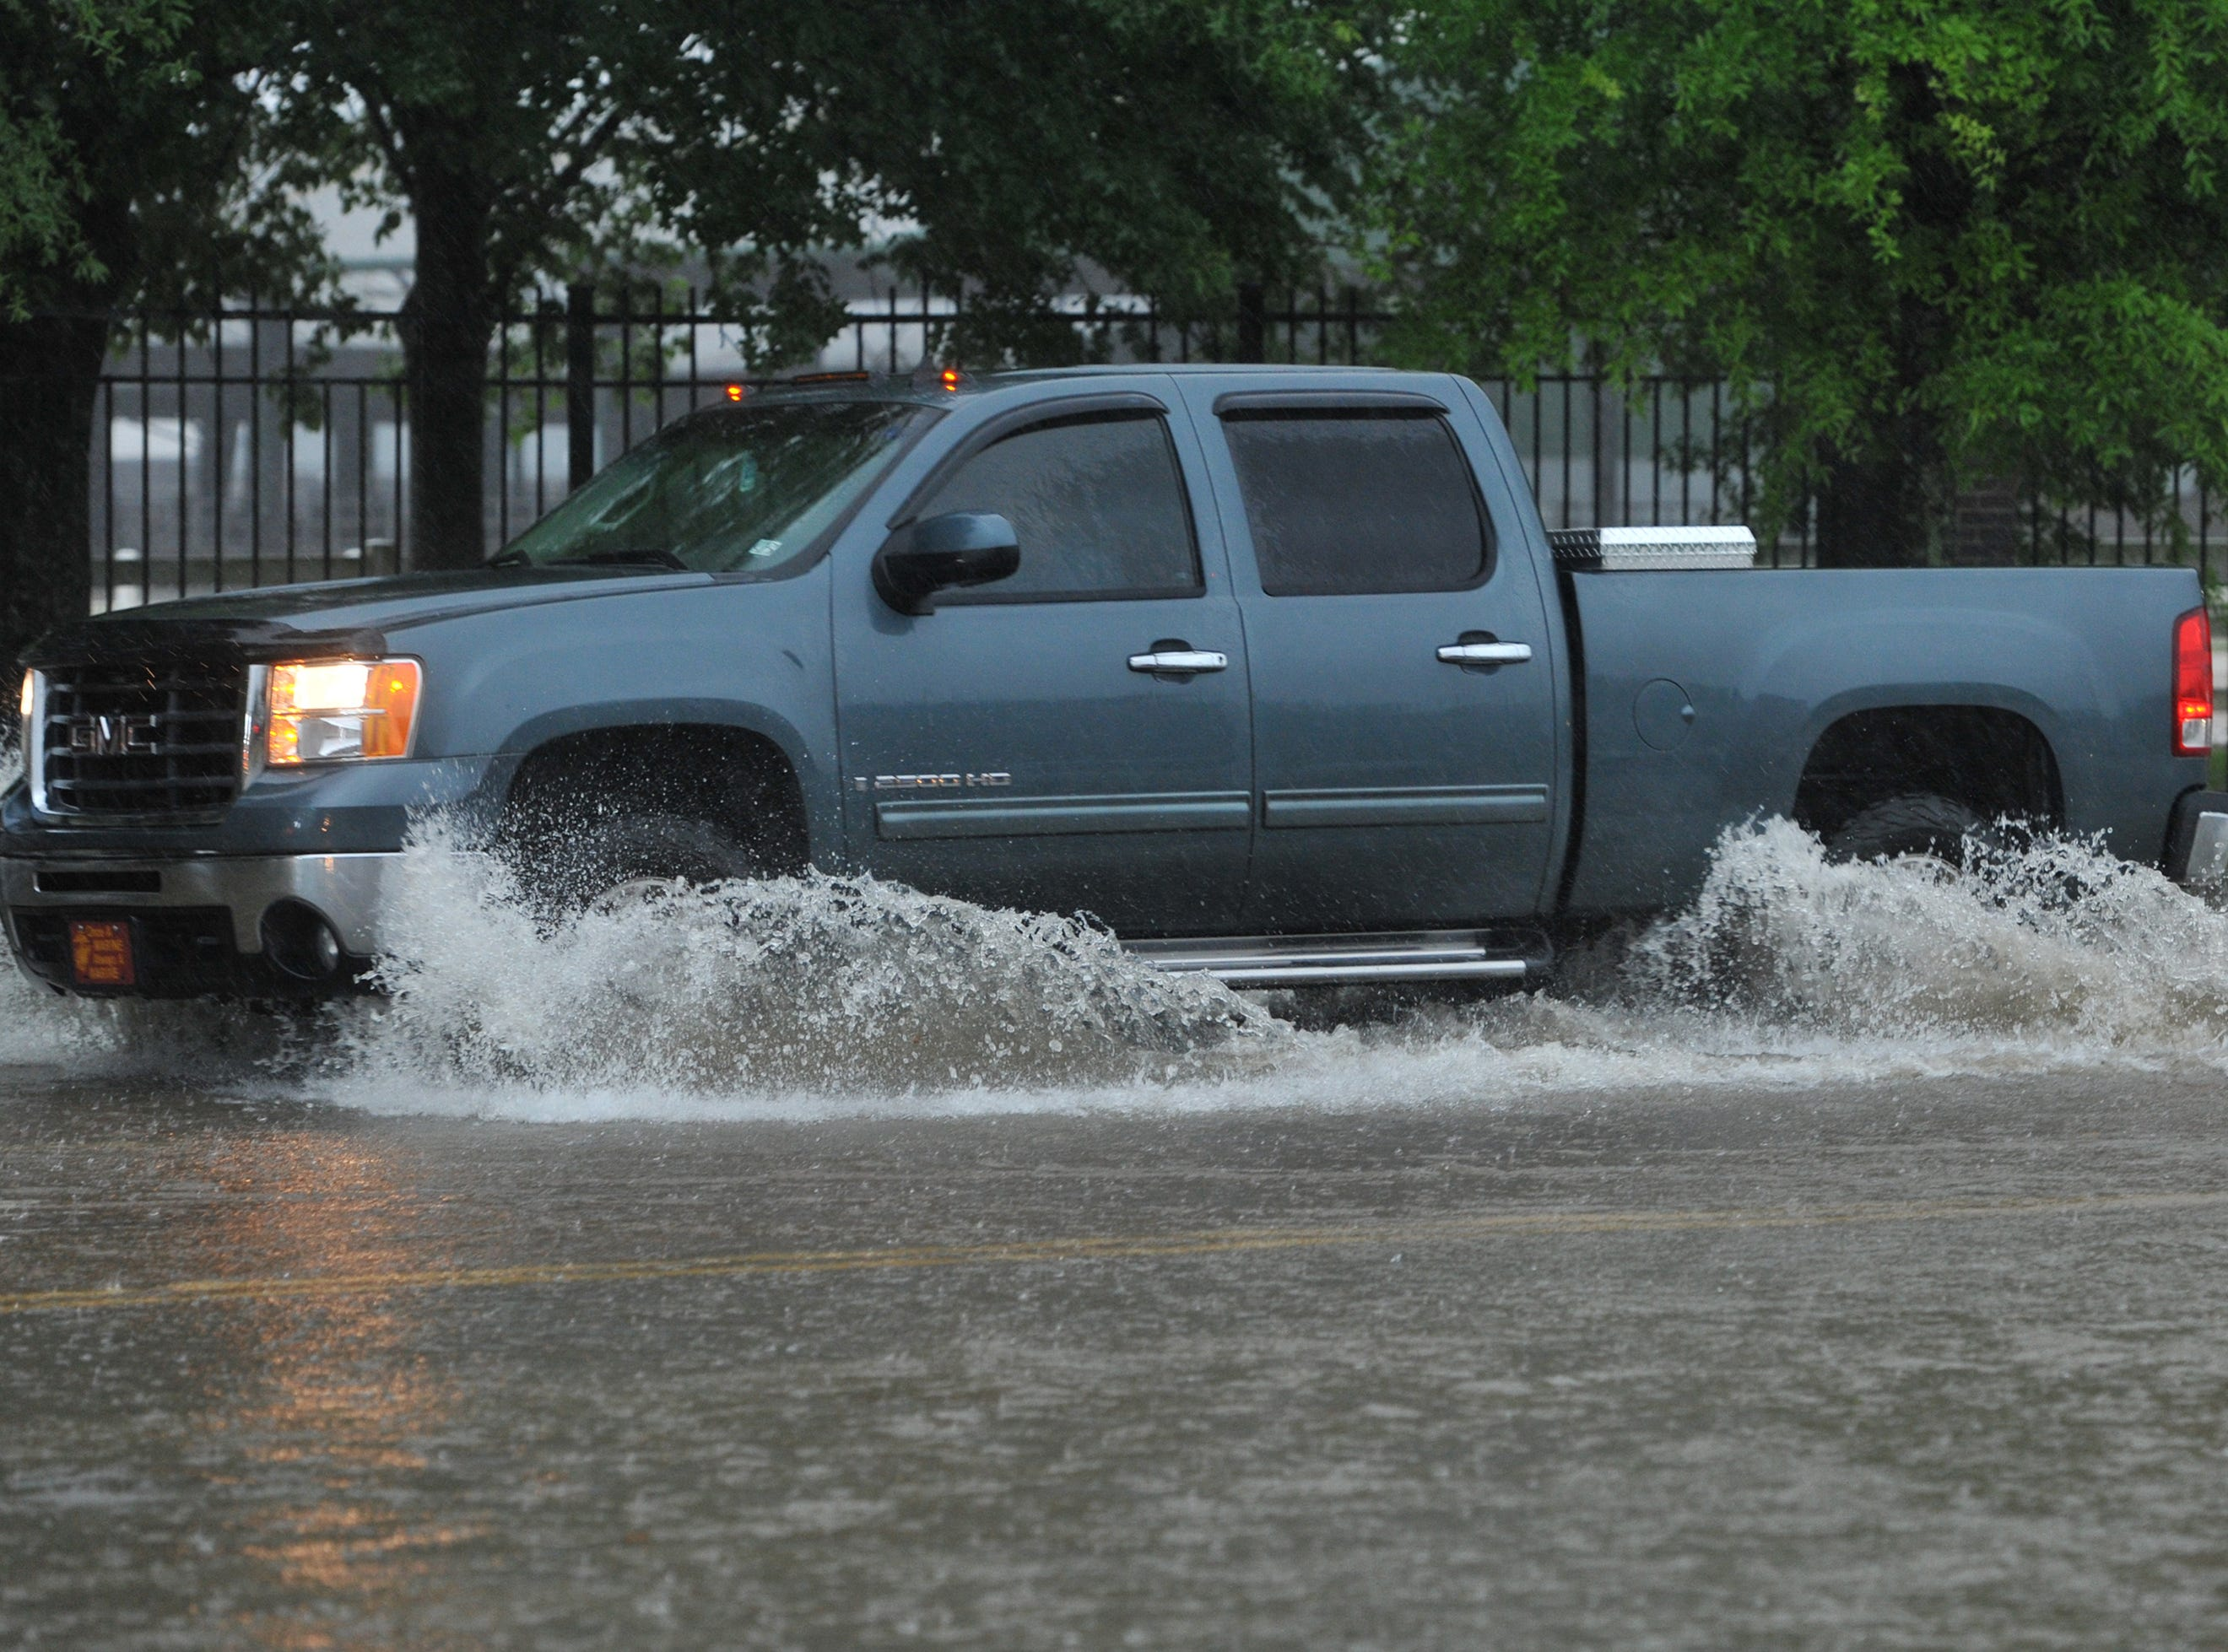 Water flies as a truck pushes through floodwaters on  High Street. Thursday, May 9, 2019